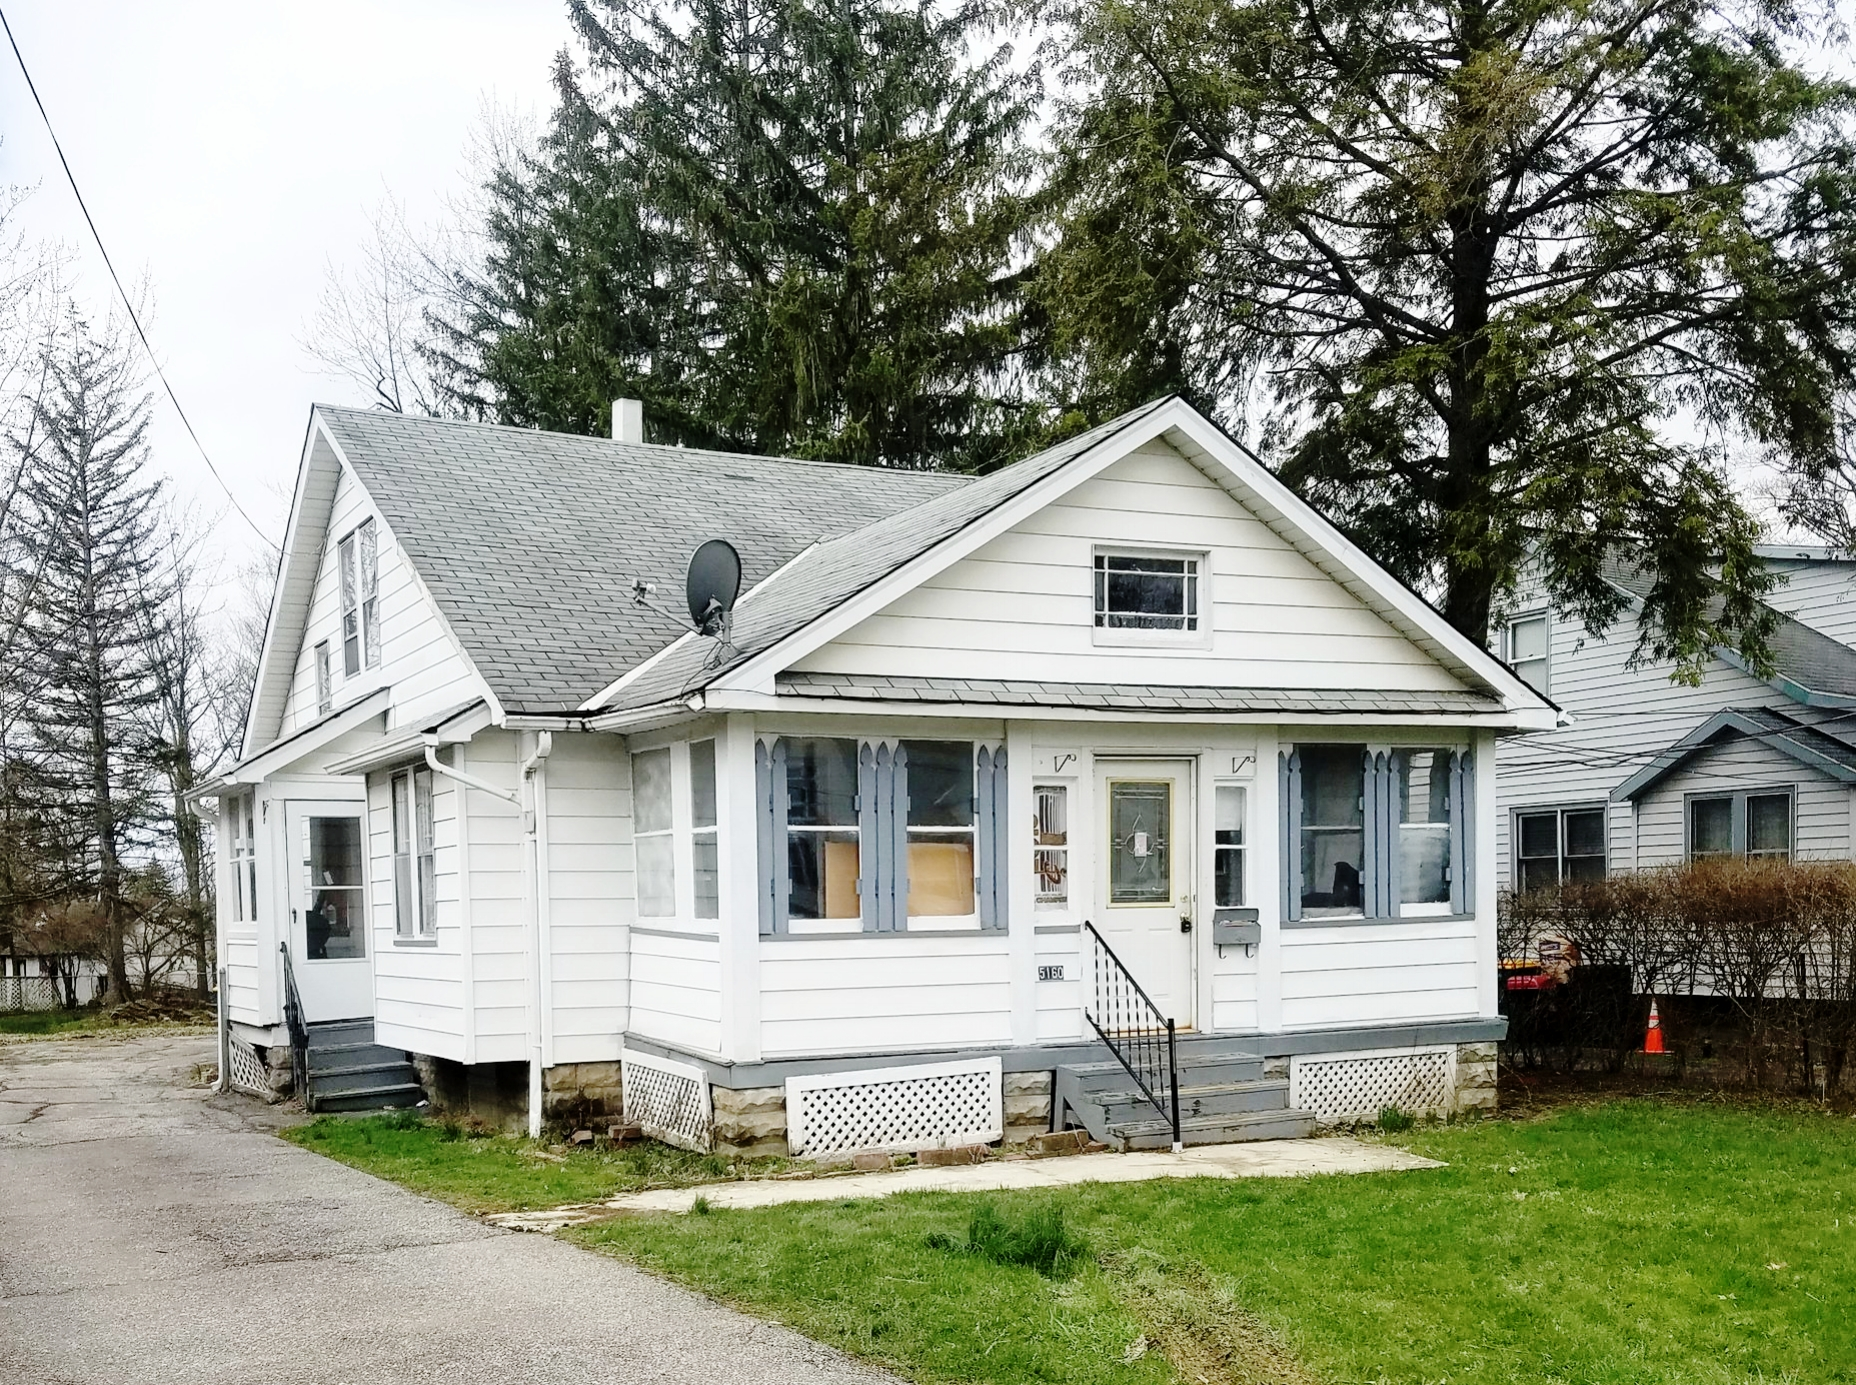 5160 Charles St., Maple Hts. | 3 bed 1 bath | 947 Sq. Ft. | $22,000